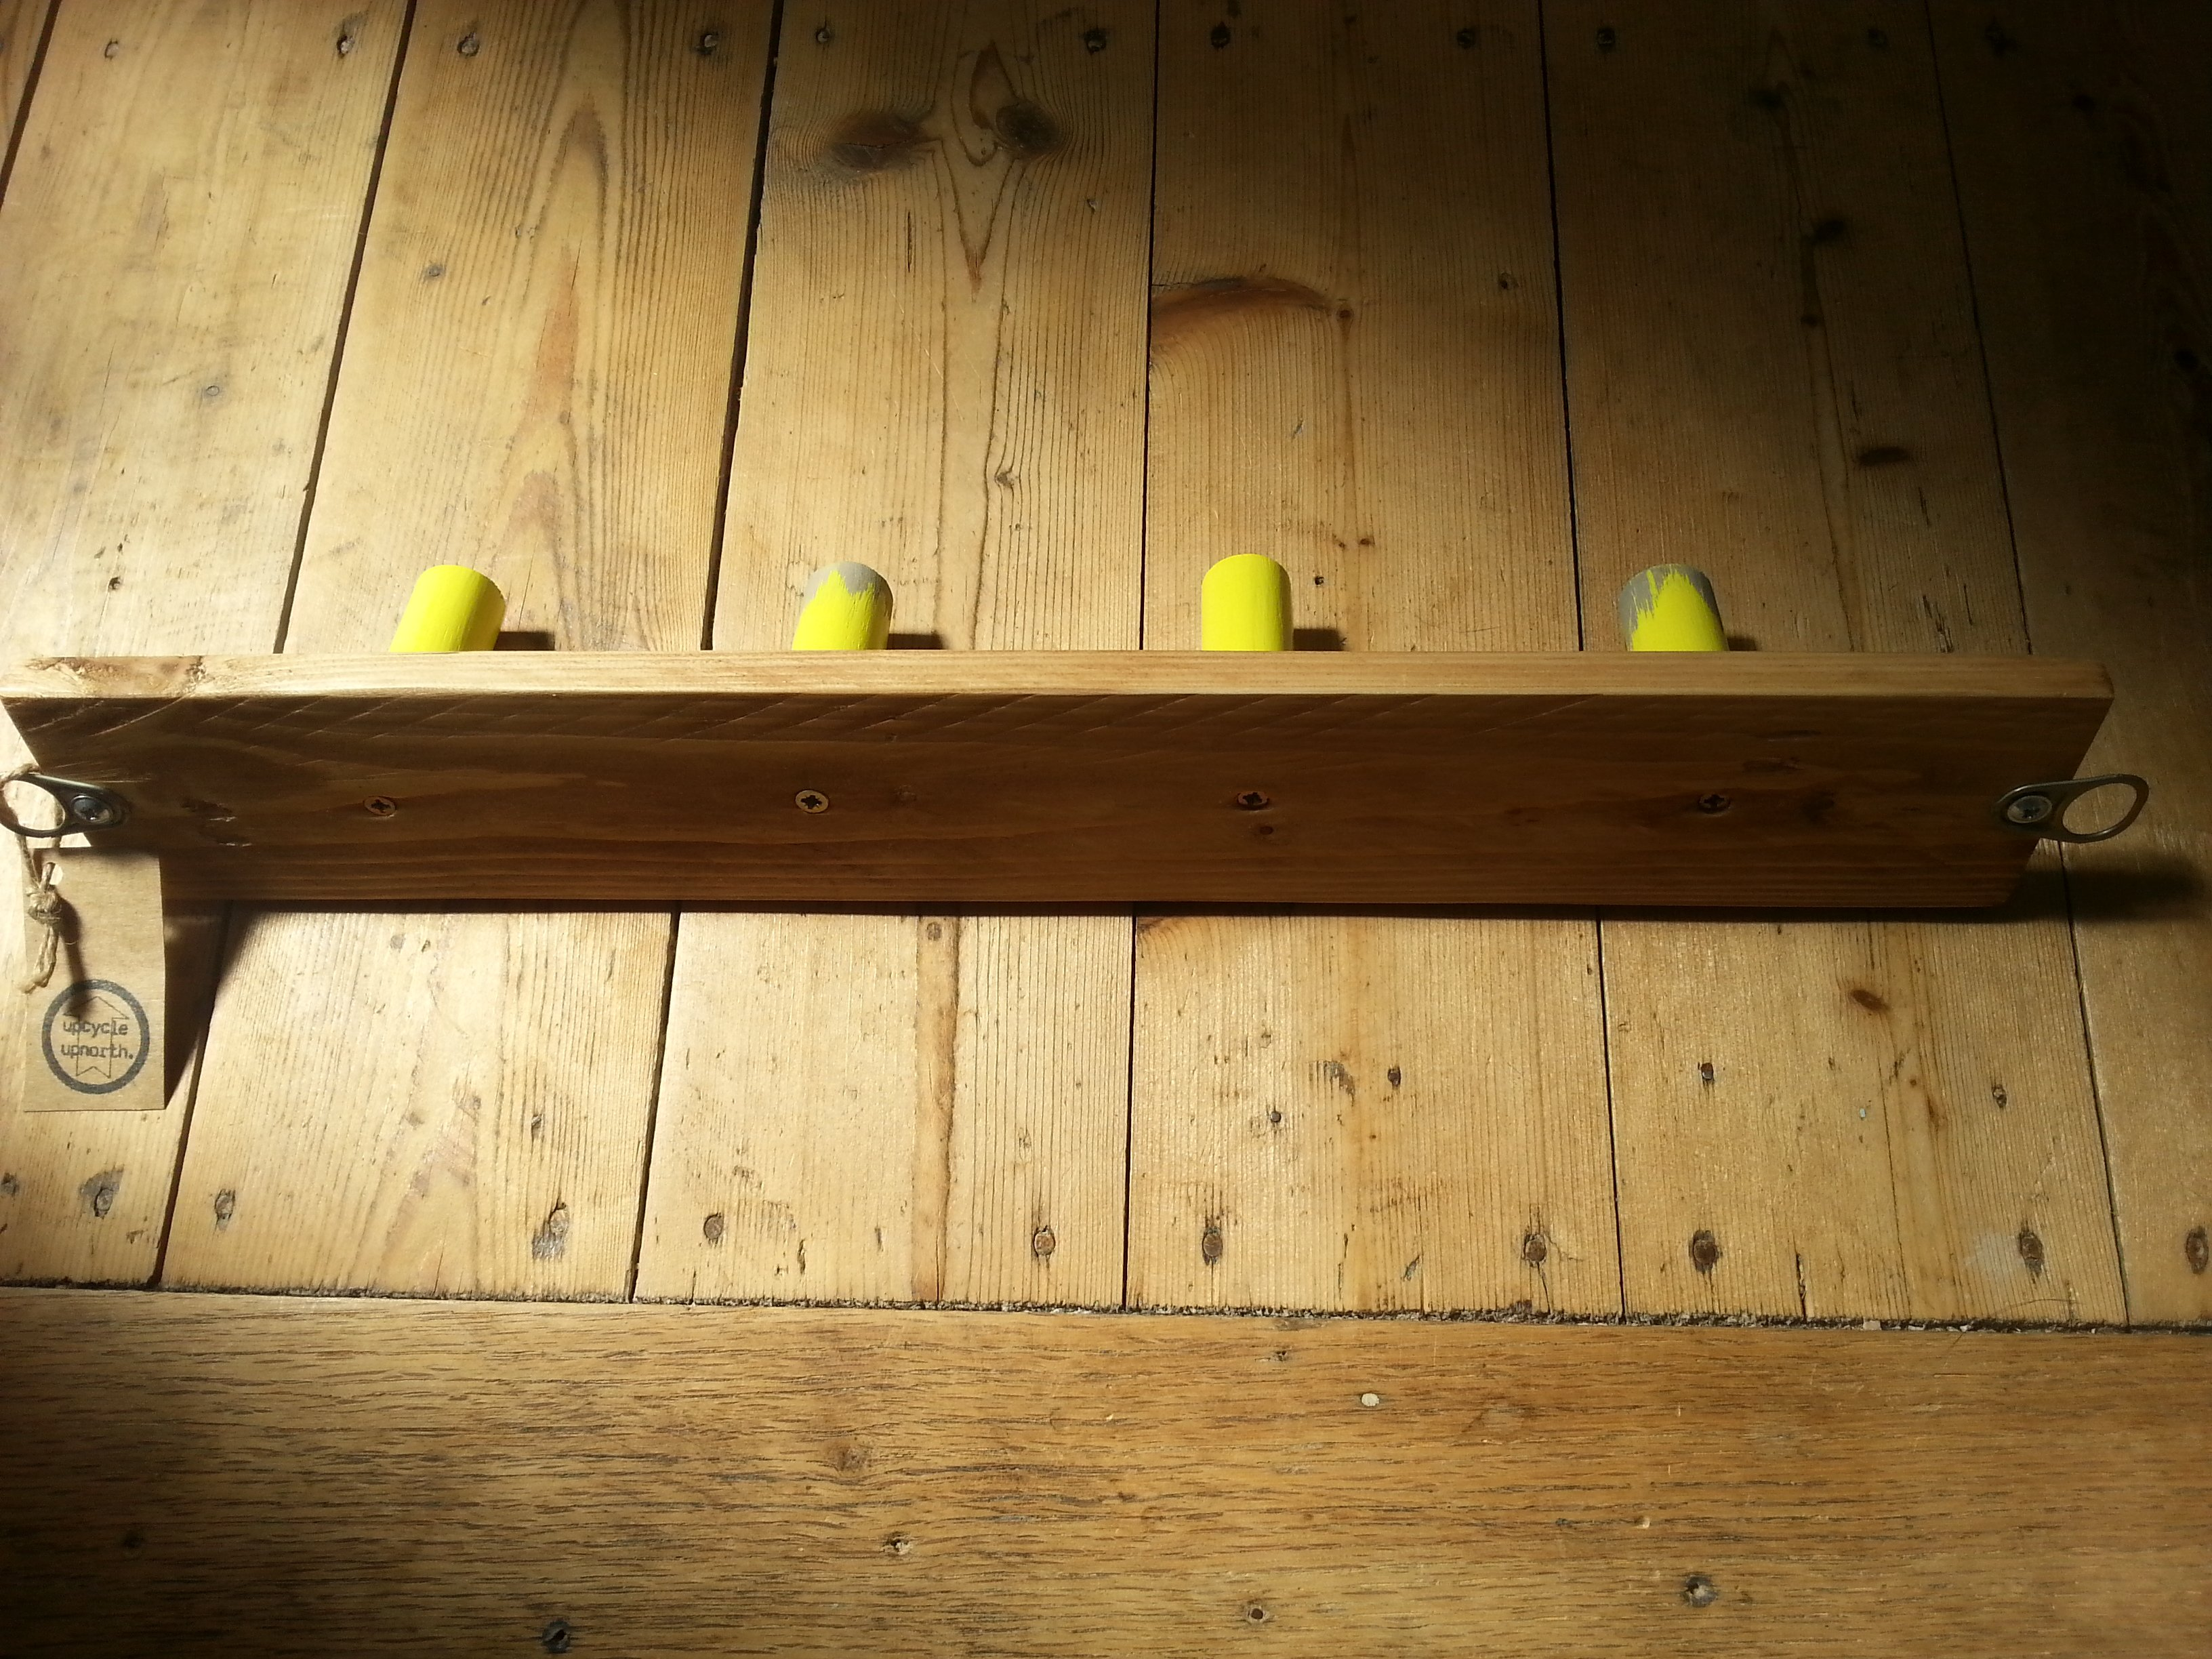 upcycled wooden hook rack, sustainable, designed, handmade, reclaimed wood, reuse, eco conscious gifts, yellow hooks, wall hooks